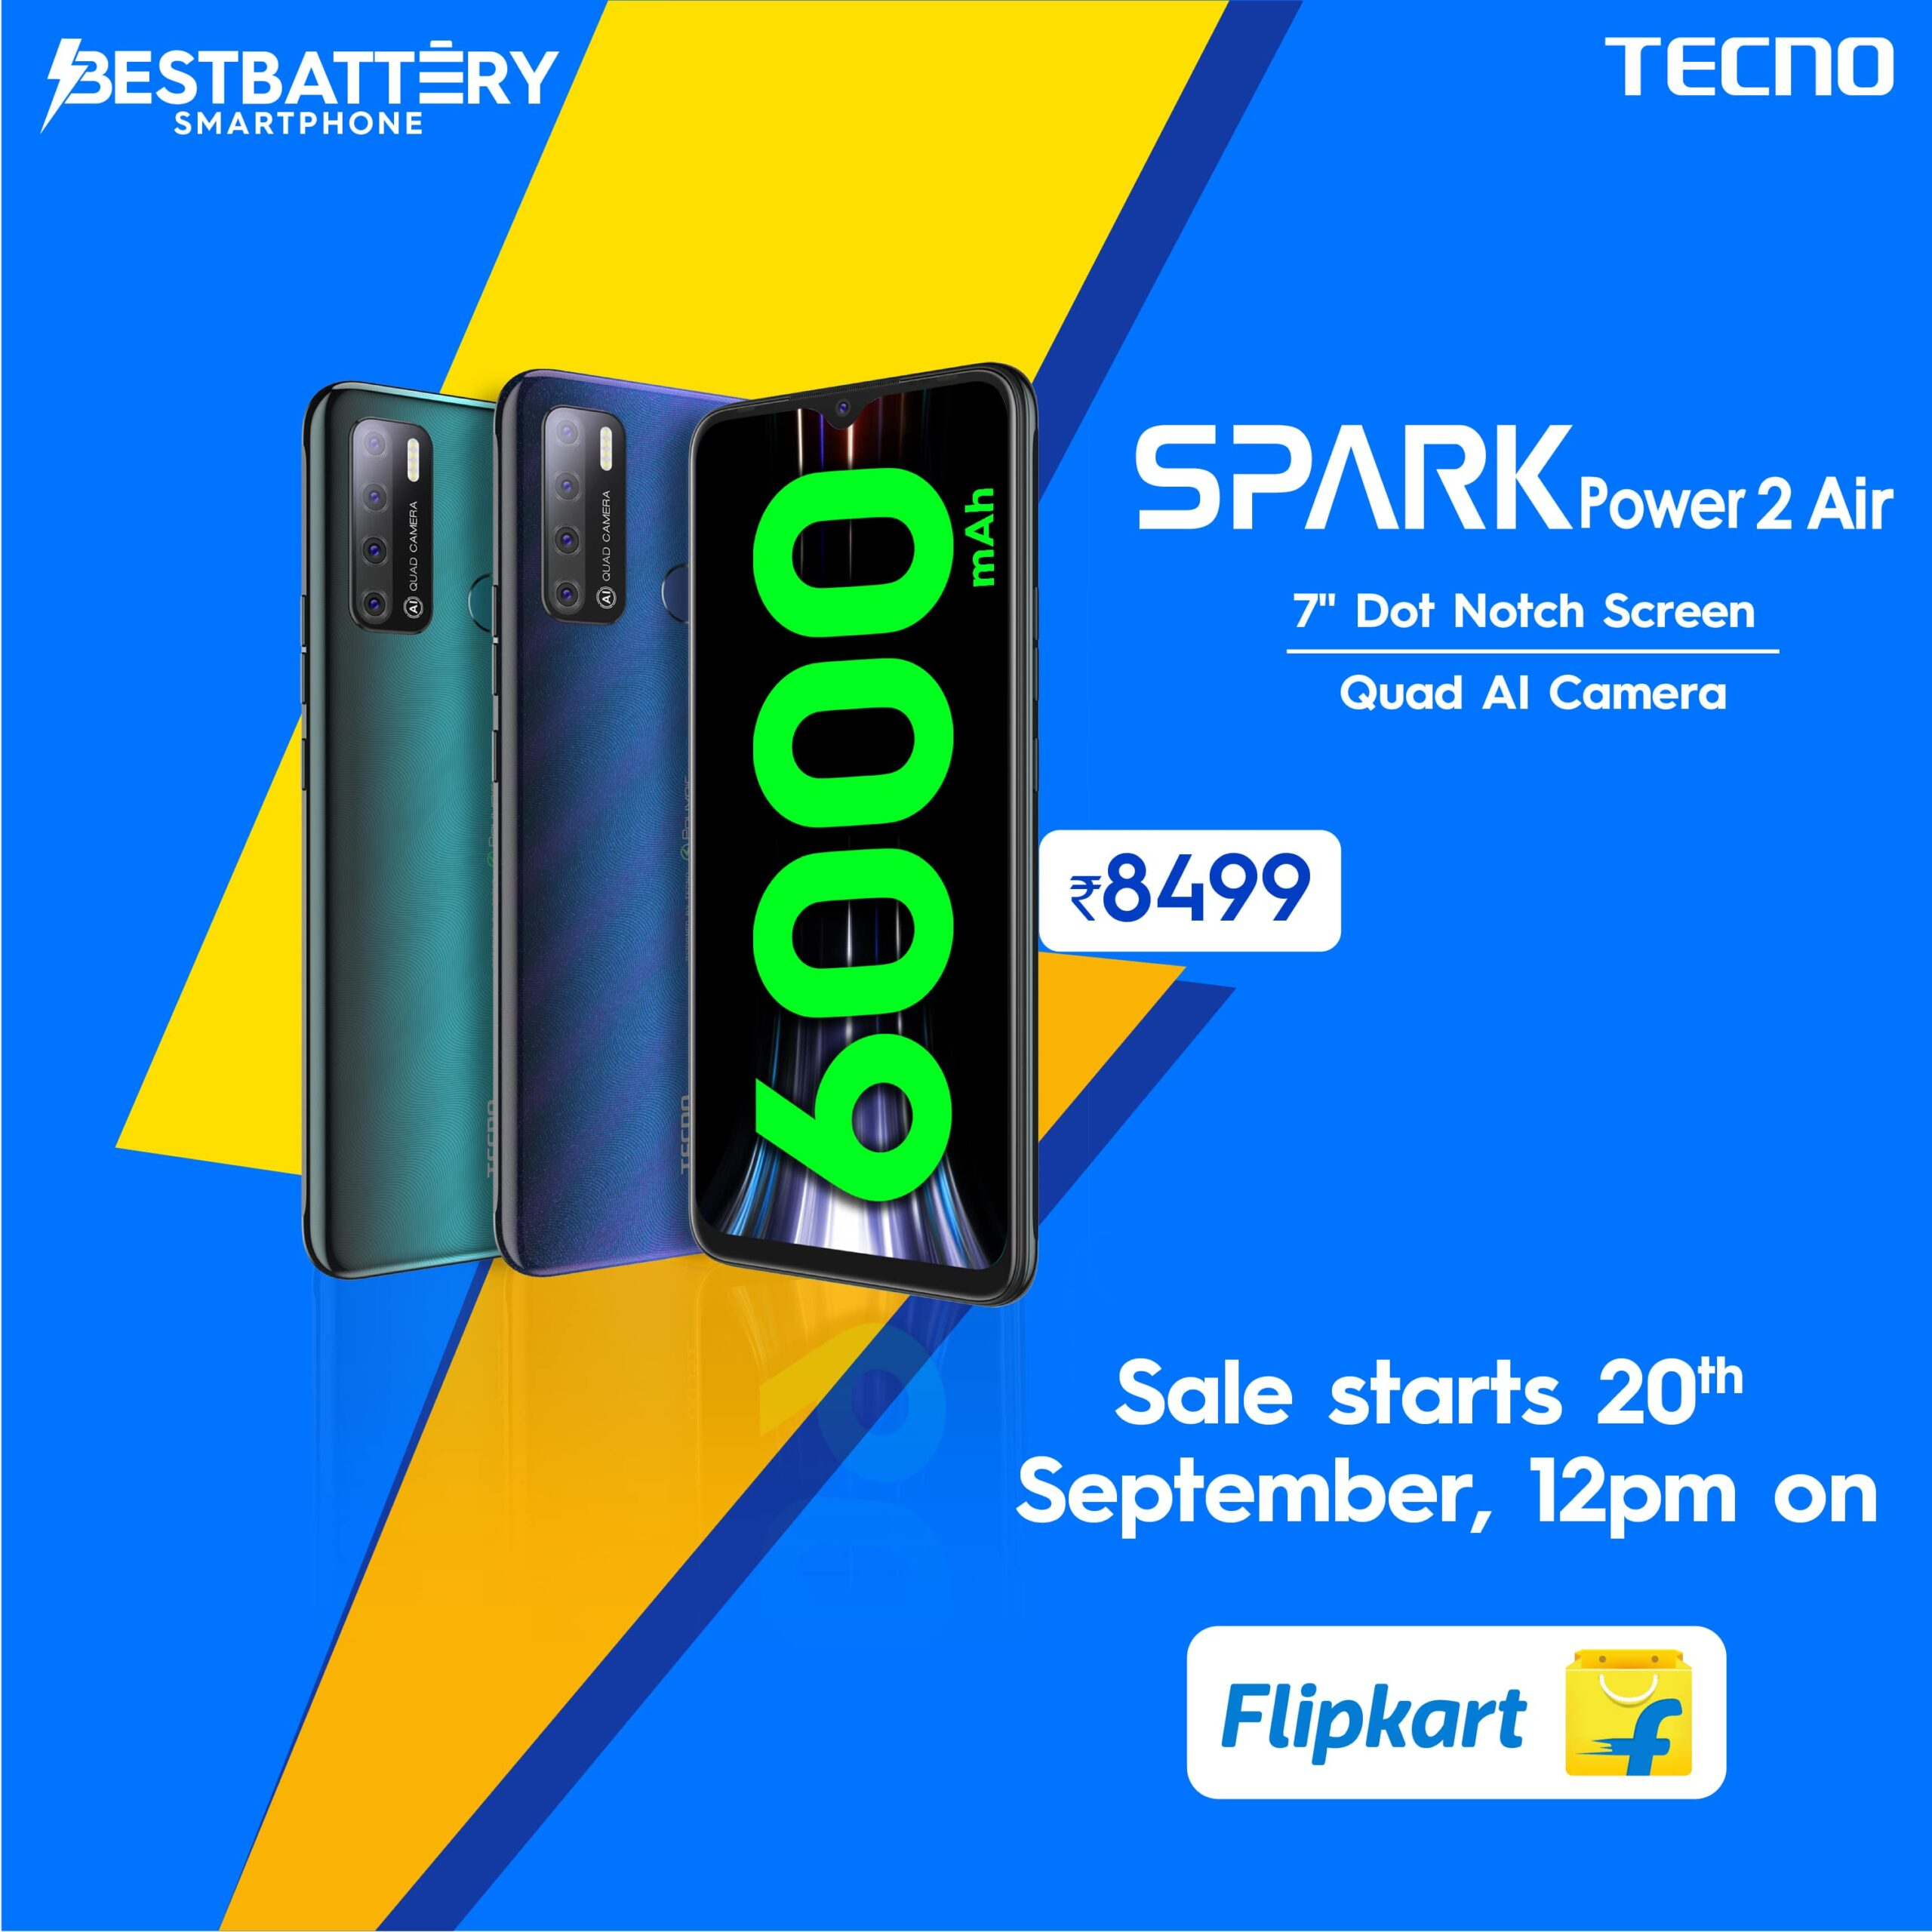 TECNO launches SPARK Power 2 Air: The new Power Play Entertainment device